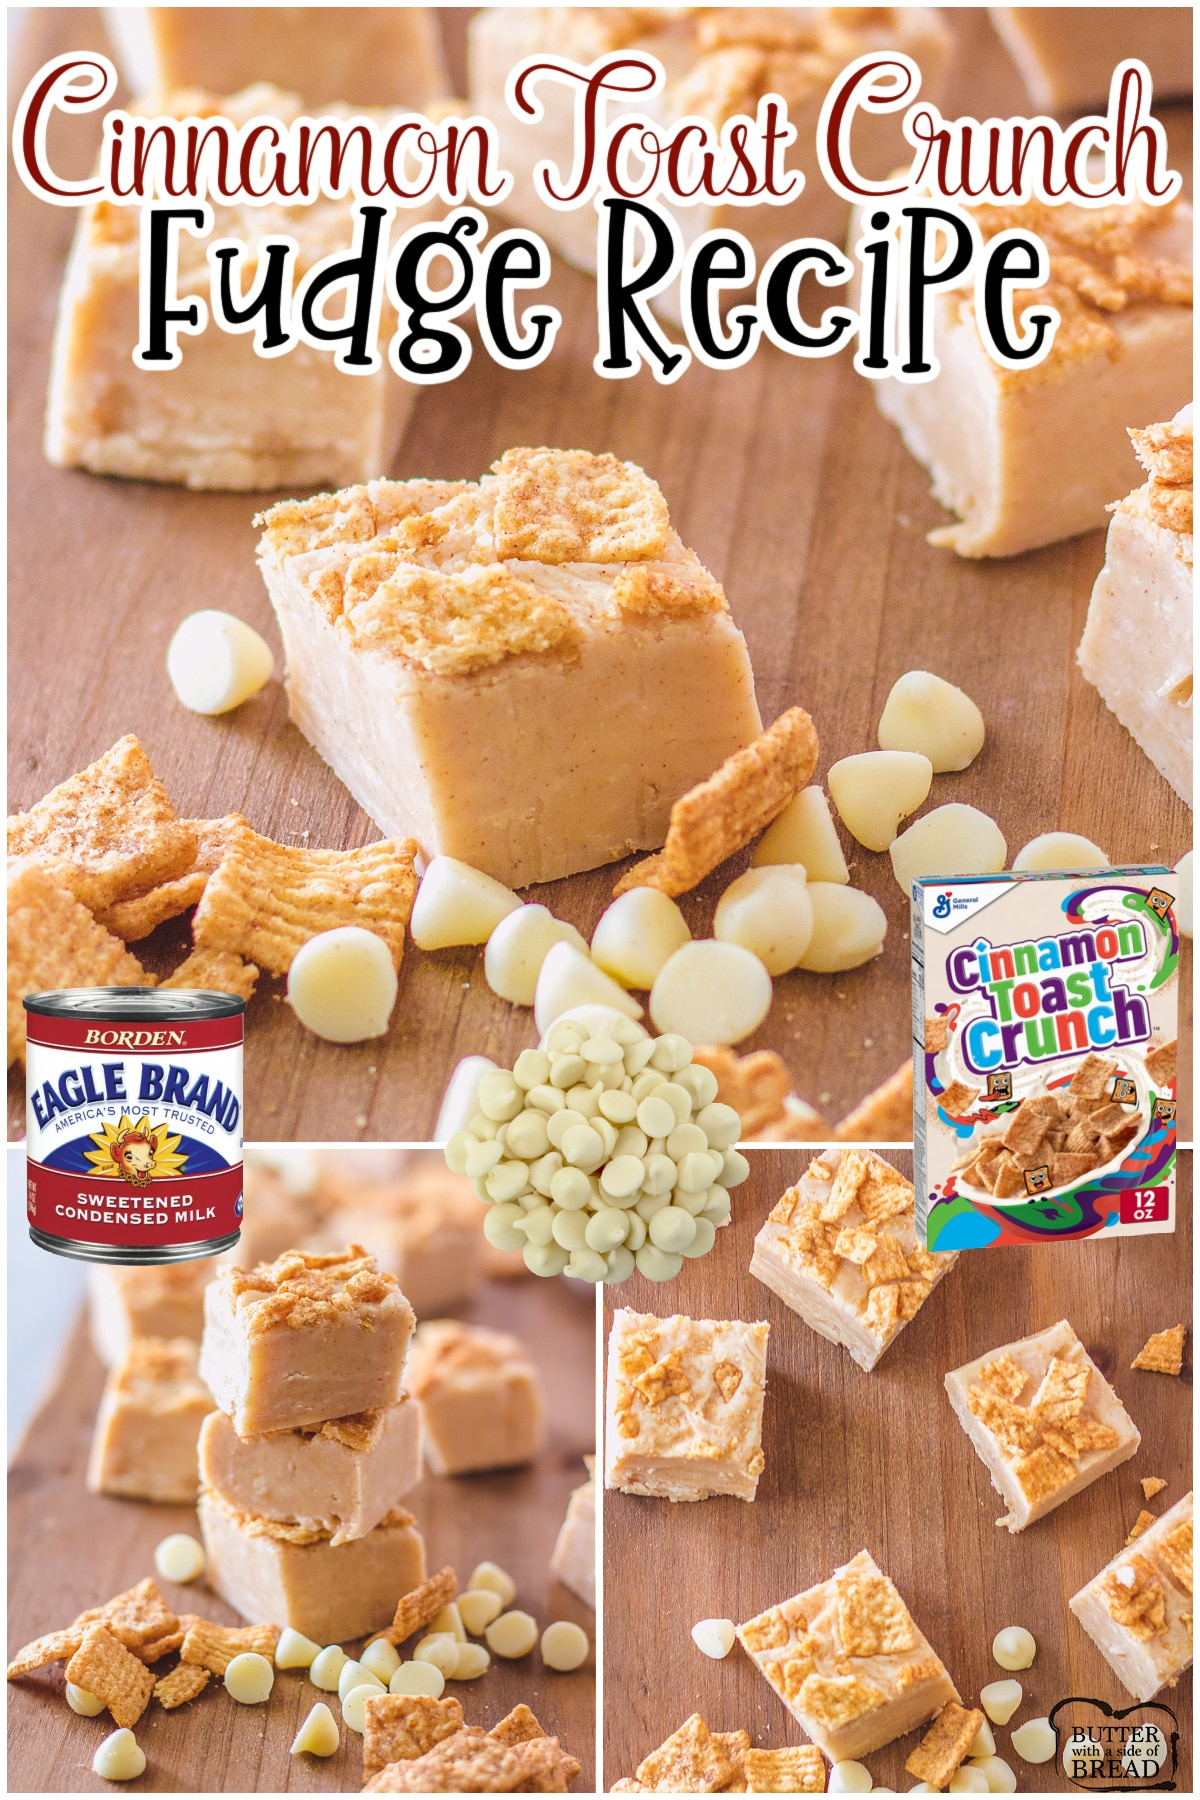 Cinnamon toast crunch fudge made easy with white chocolate, sweetened condensed milk & Cinnamon toast Crunch cereal! Fun & tasty cinnamon fudge with crunchy cereal topping that everyone loves!